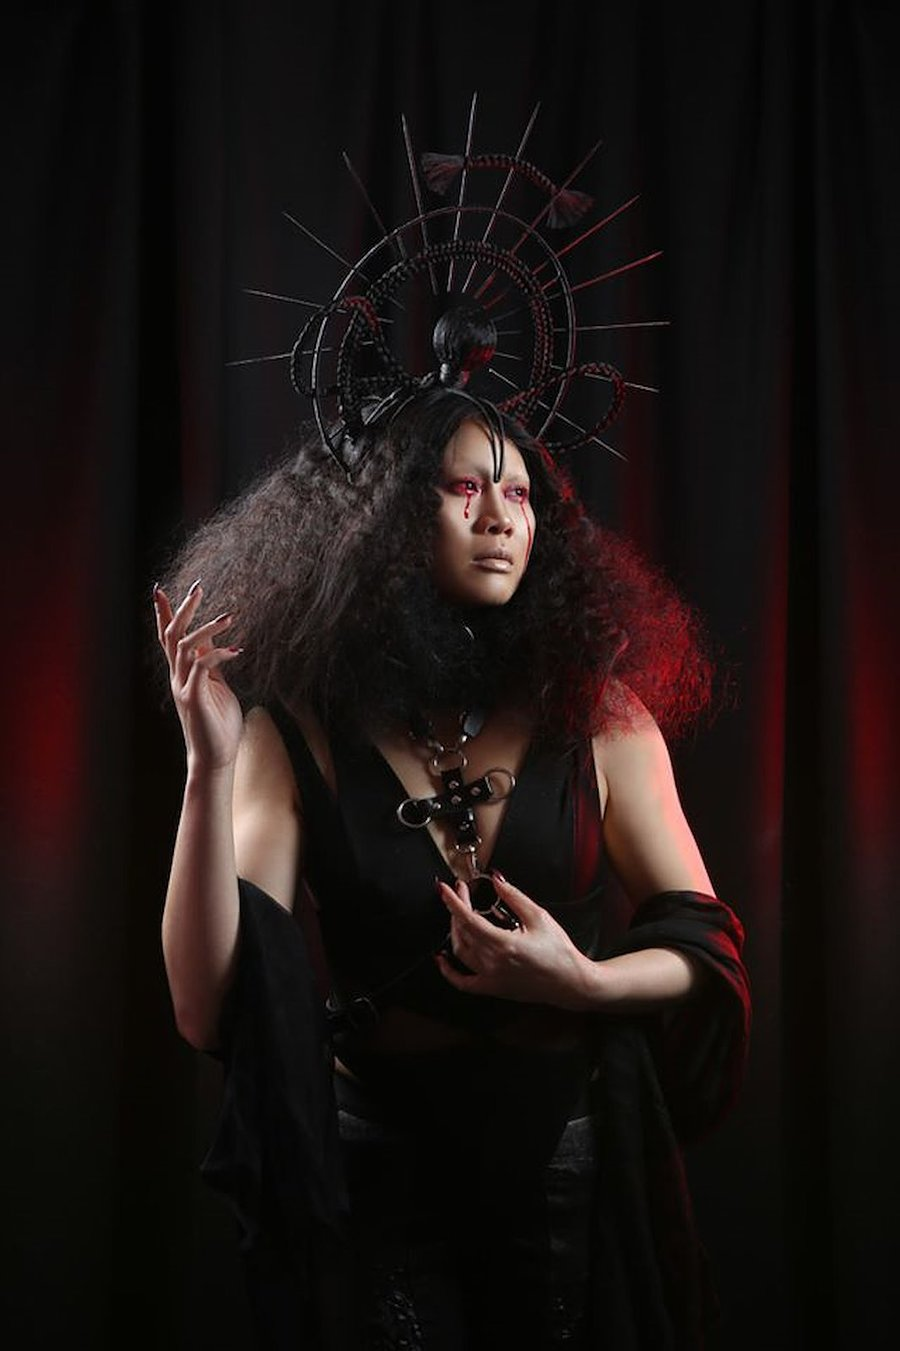 Mater Dolorosa / Model Cainivorous, Hair styling by Dbxhair / Uploaded 16th August 2020 @ 05:20 AM